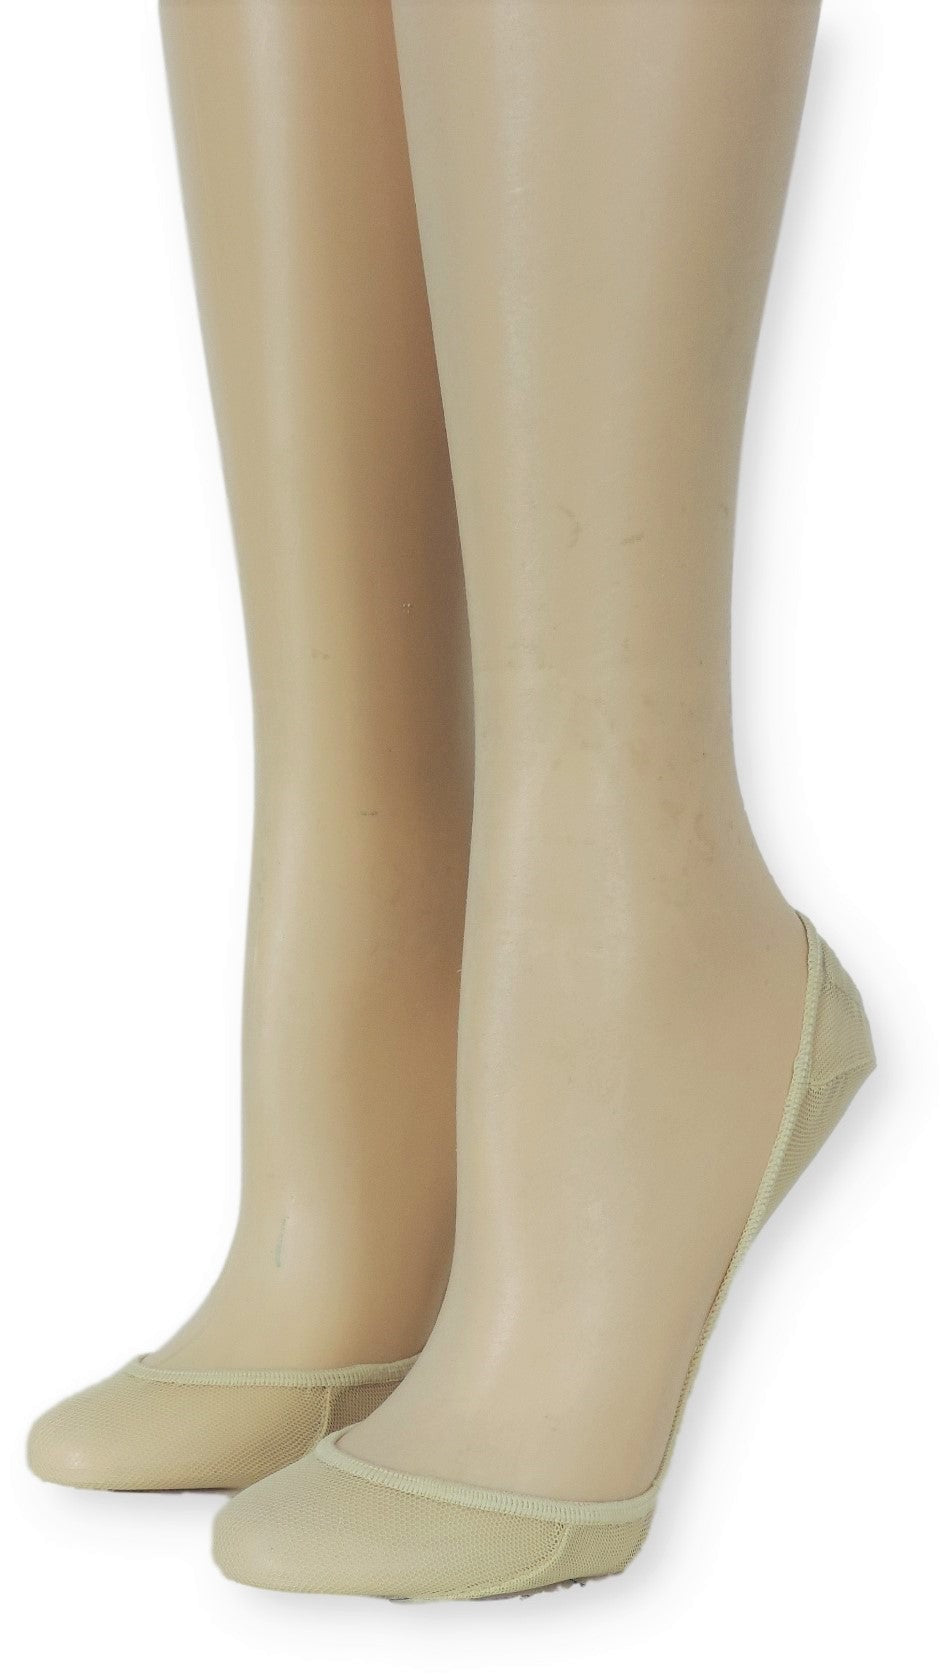 Ivory Ankle Mesh Socks - Global Trendz Fashion®